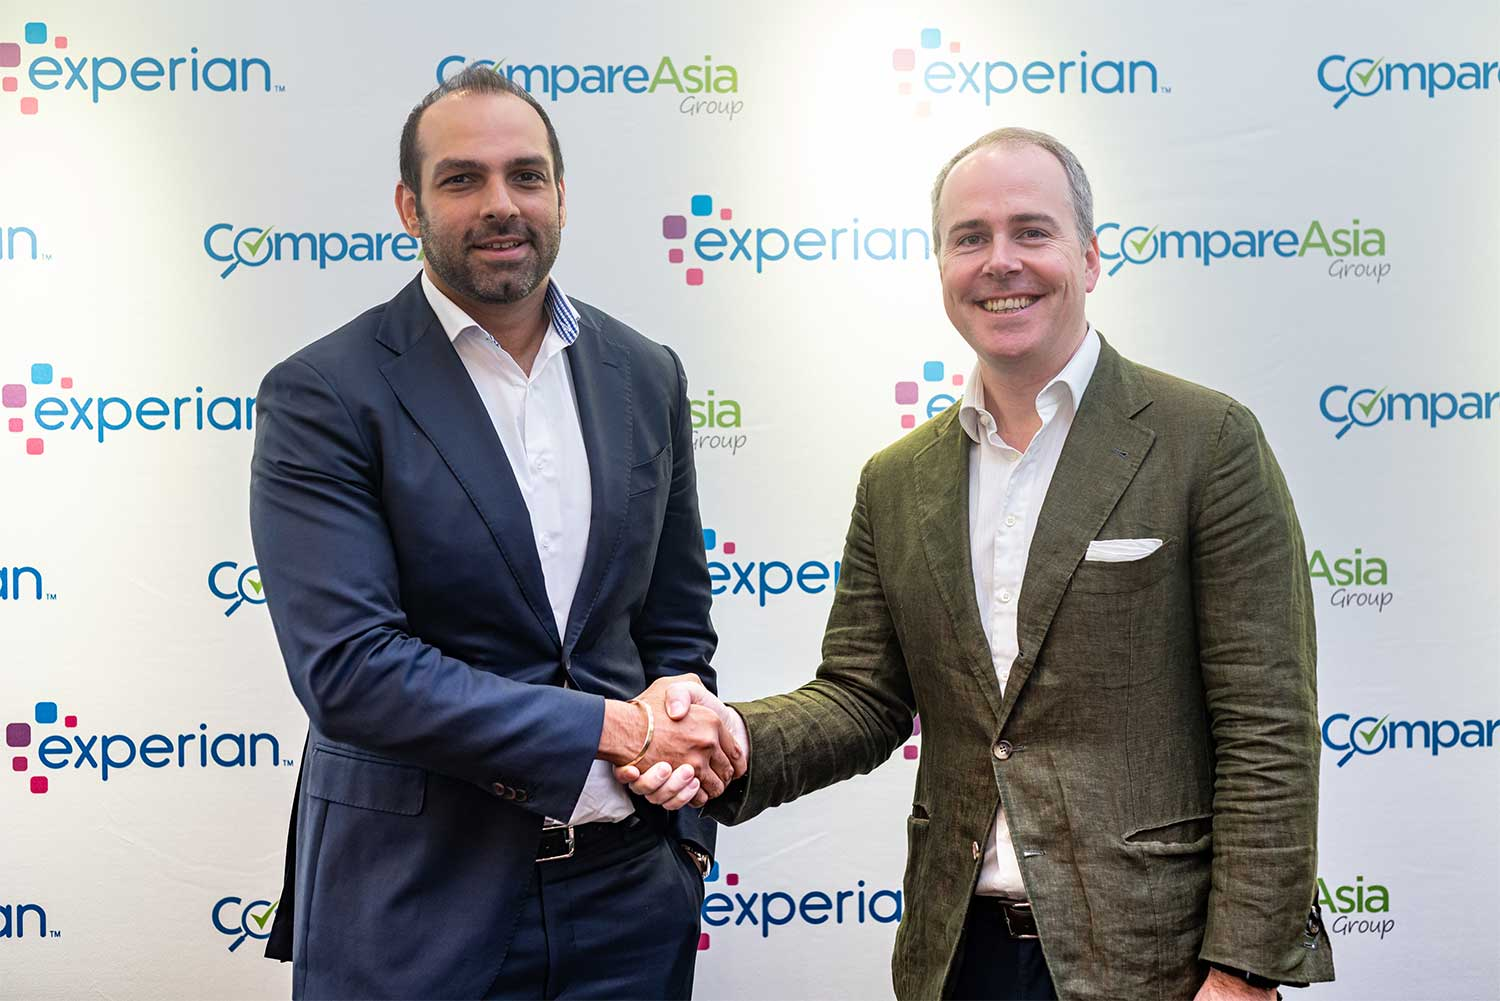 Experian Leads US$20M First Close of Series B1 Investment in CompareAsiaGroup; Aims To Build Healthier Financial Lives for Thailand's Consumers via MoneyGuru.co.th